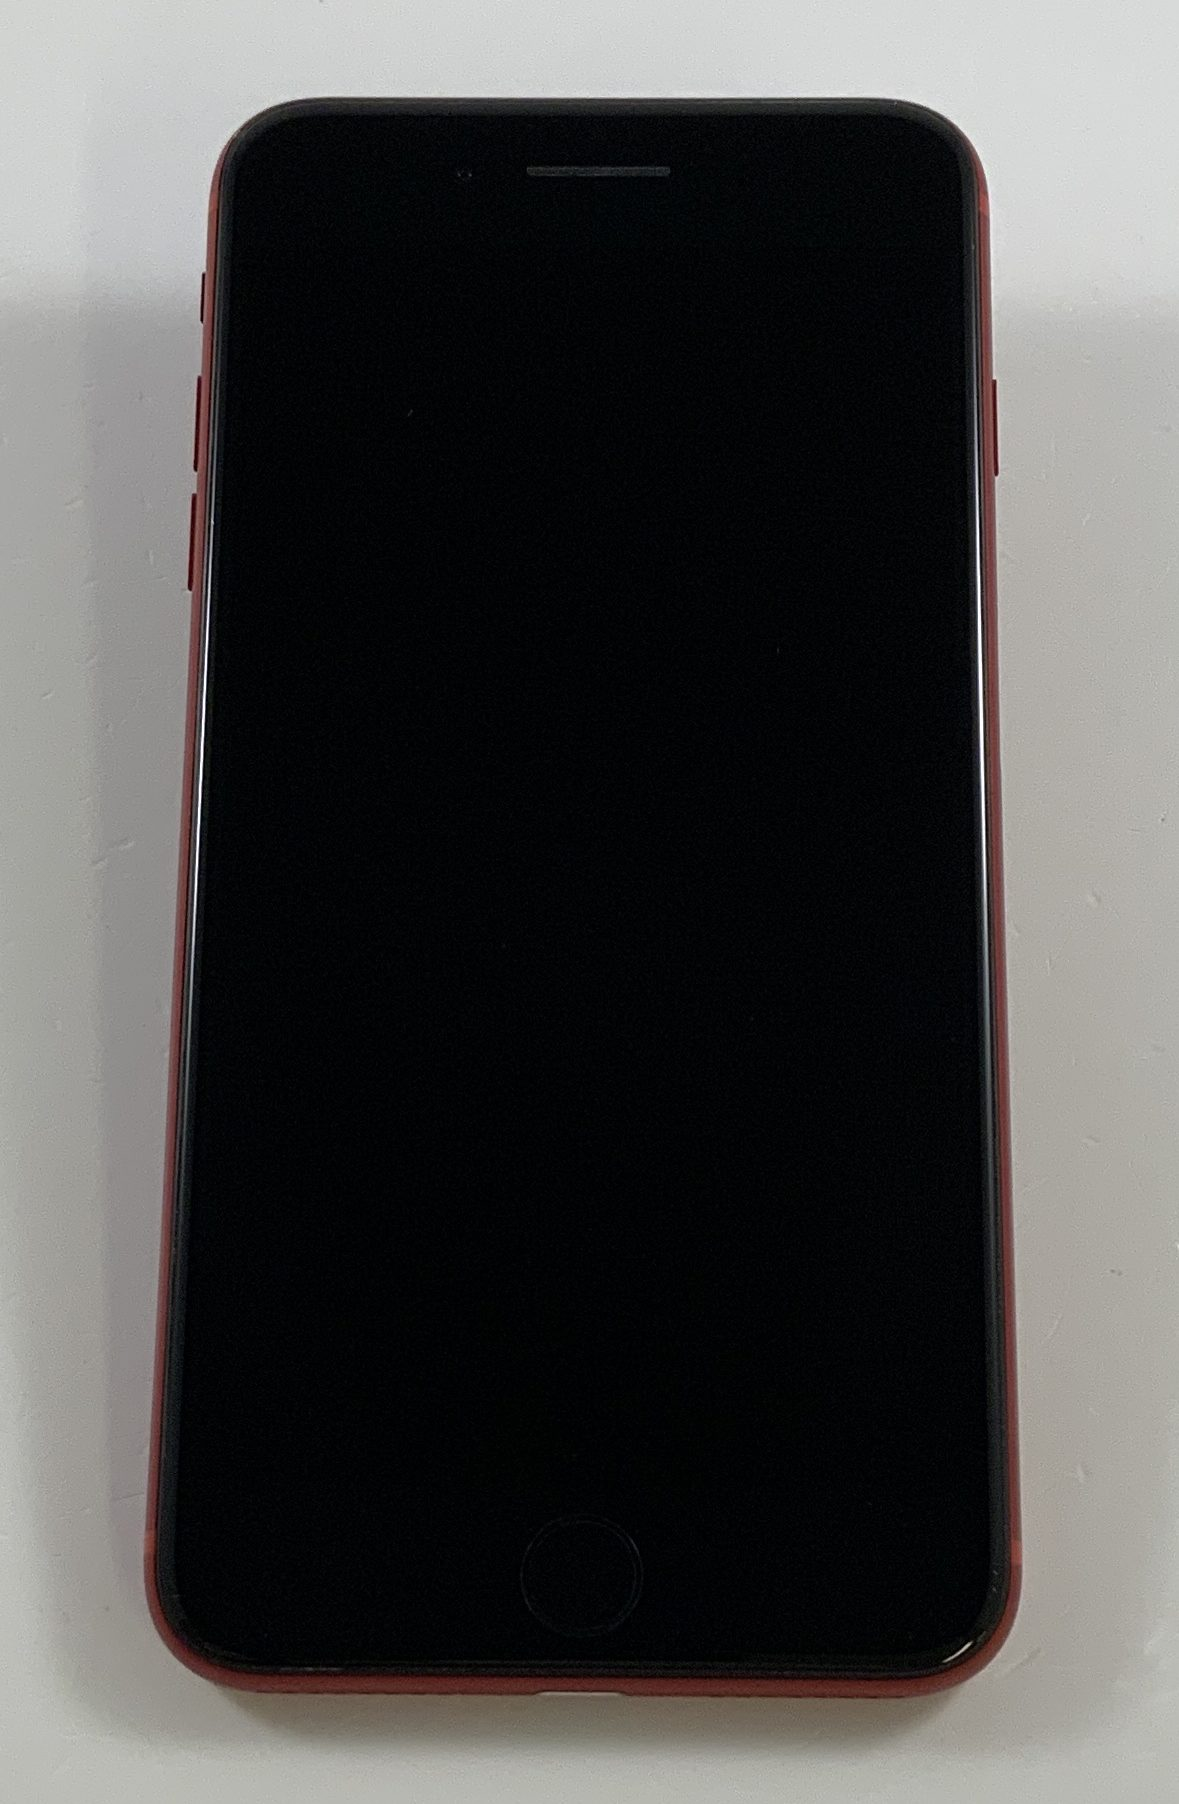 iPhone 8 Plus 64GB, 64GB, Red, image 1